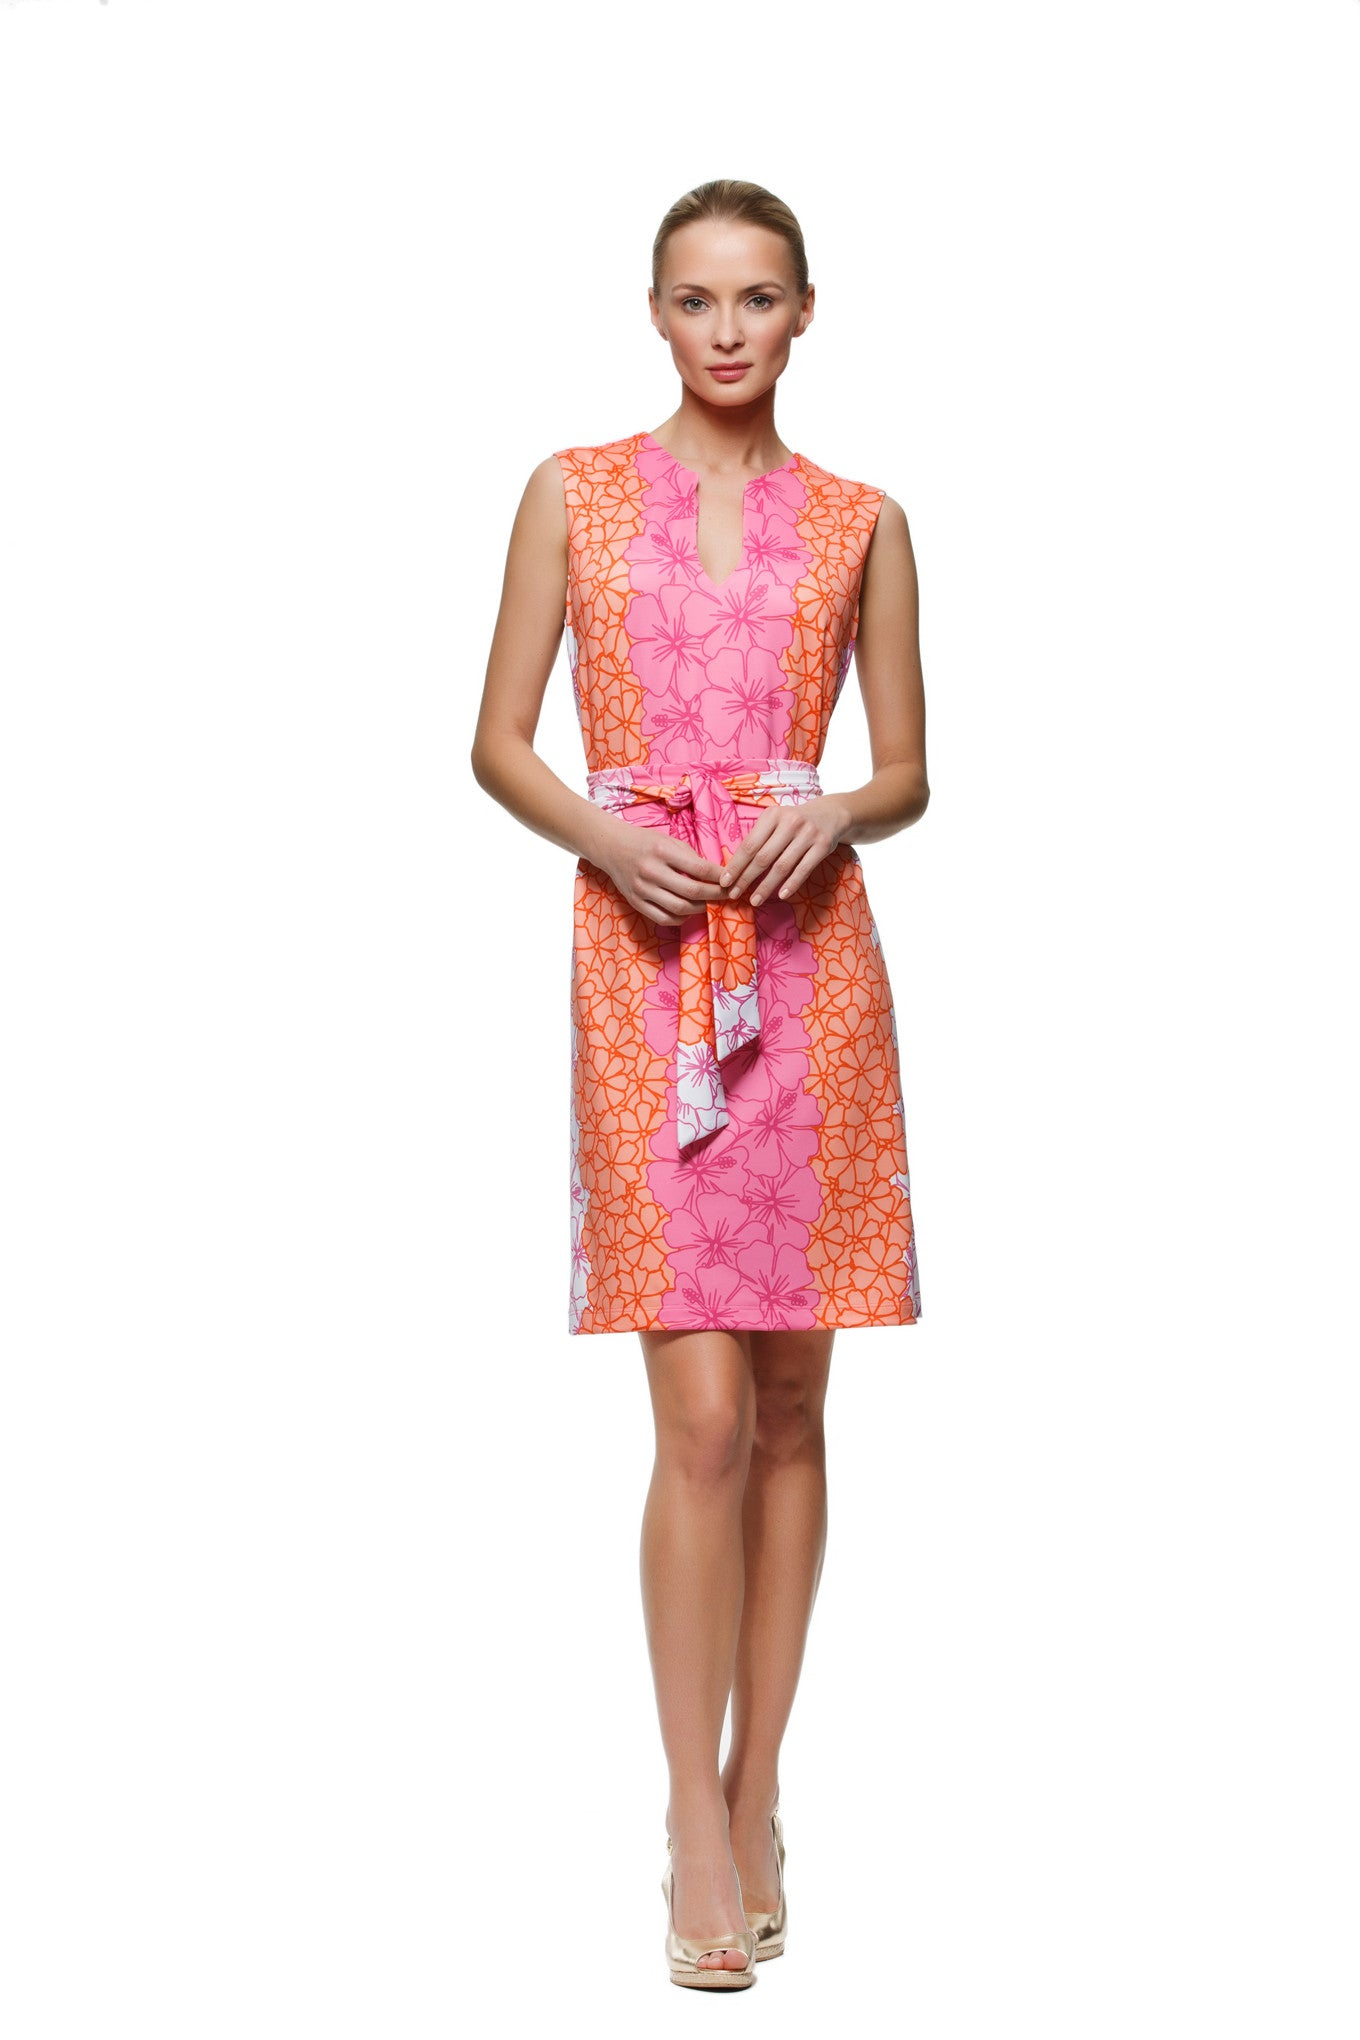 Darcy Dress in Pink and Orange Hibiscus - Rulon Reed